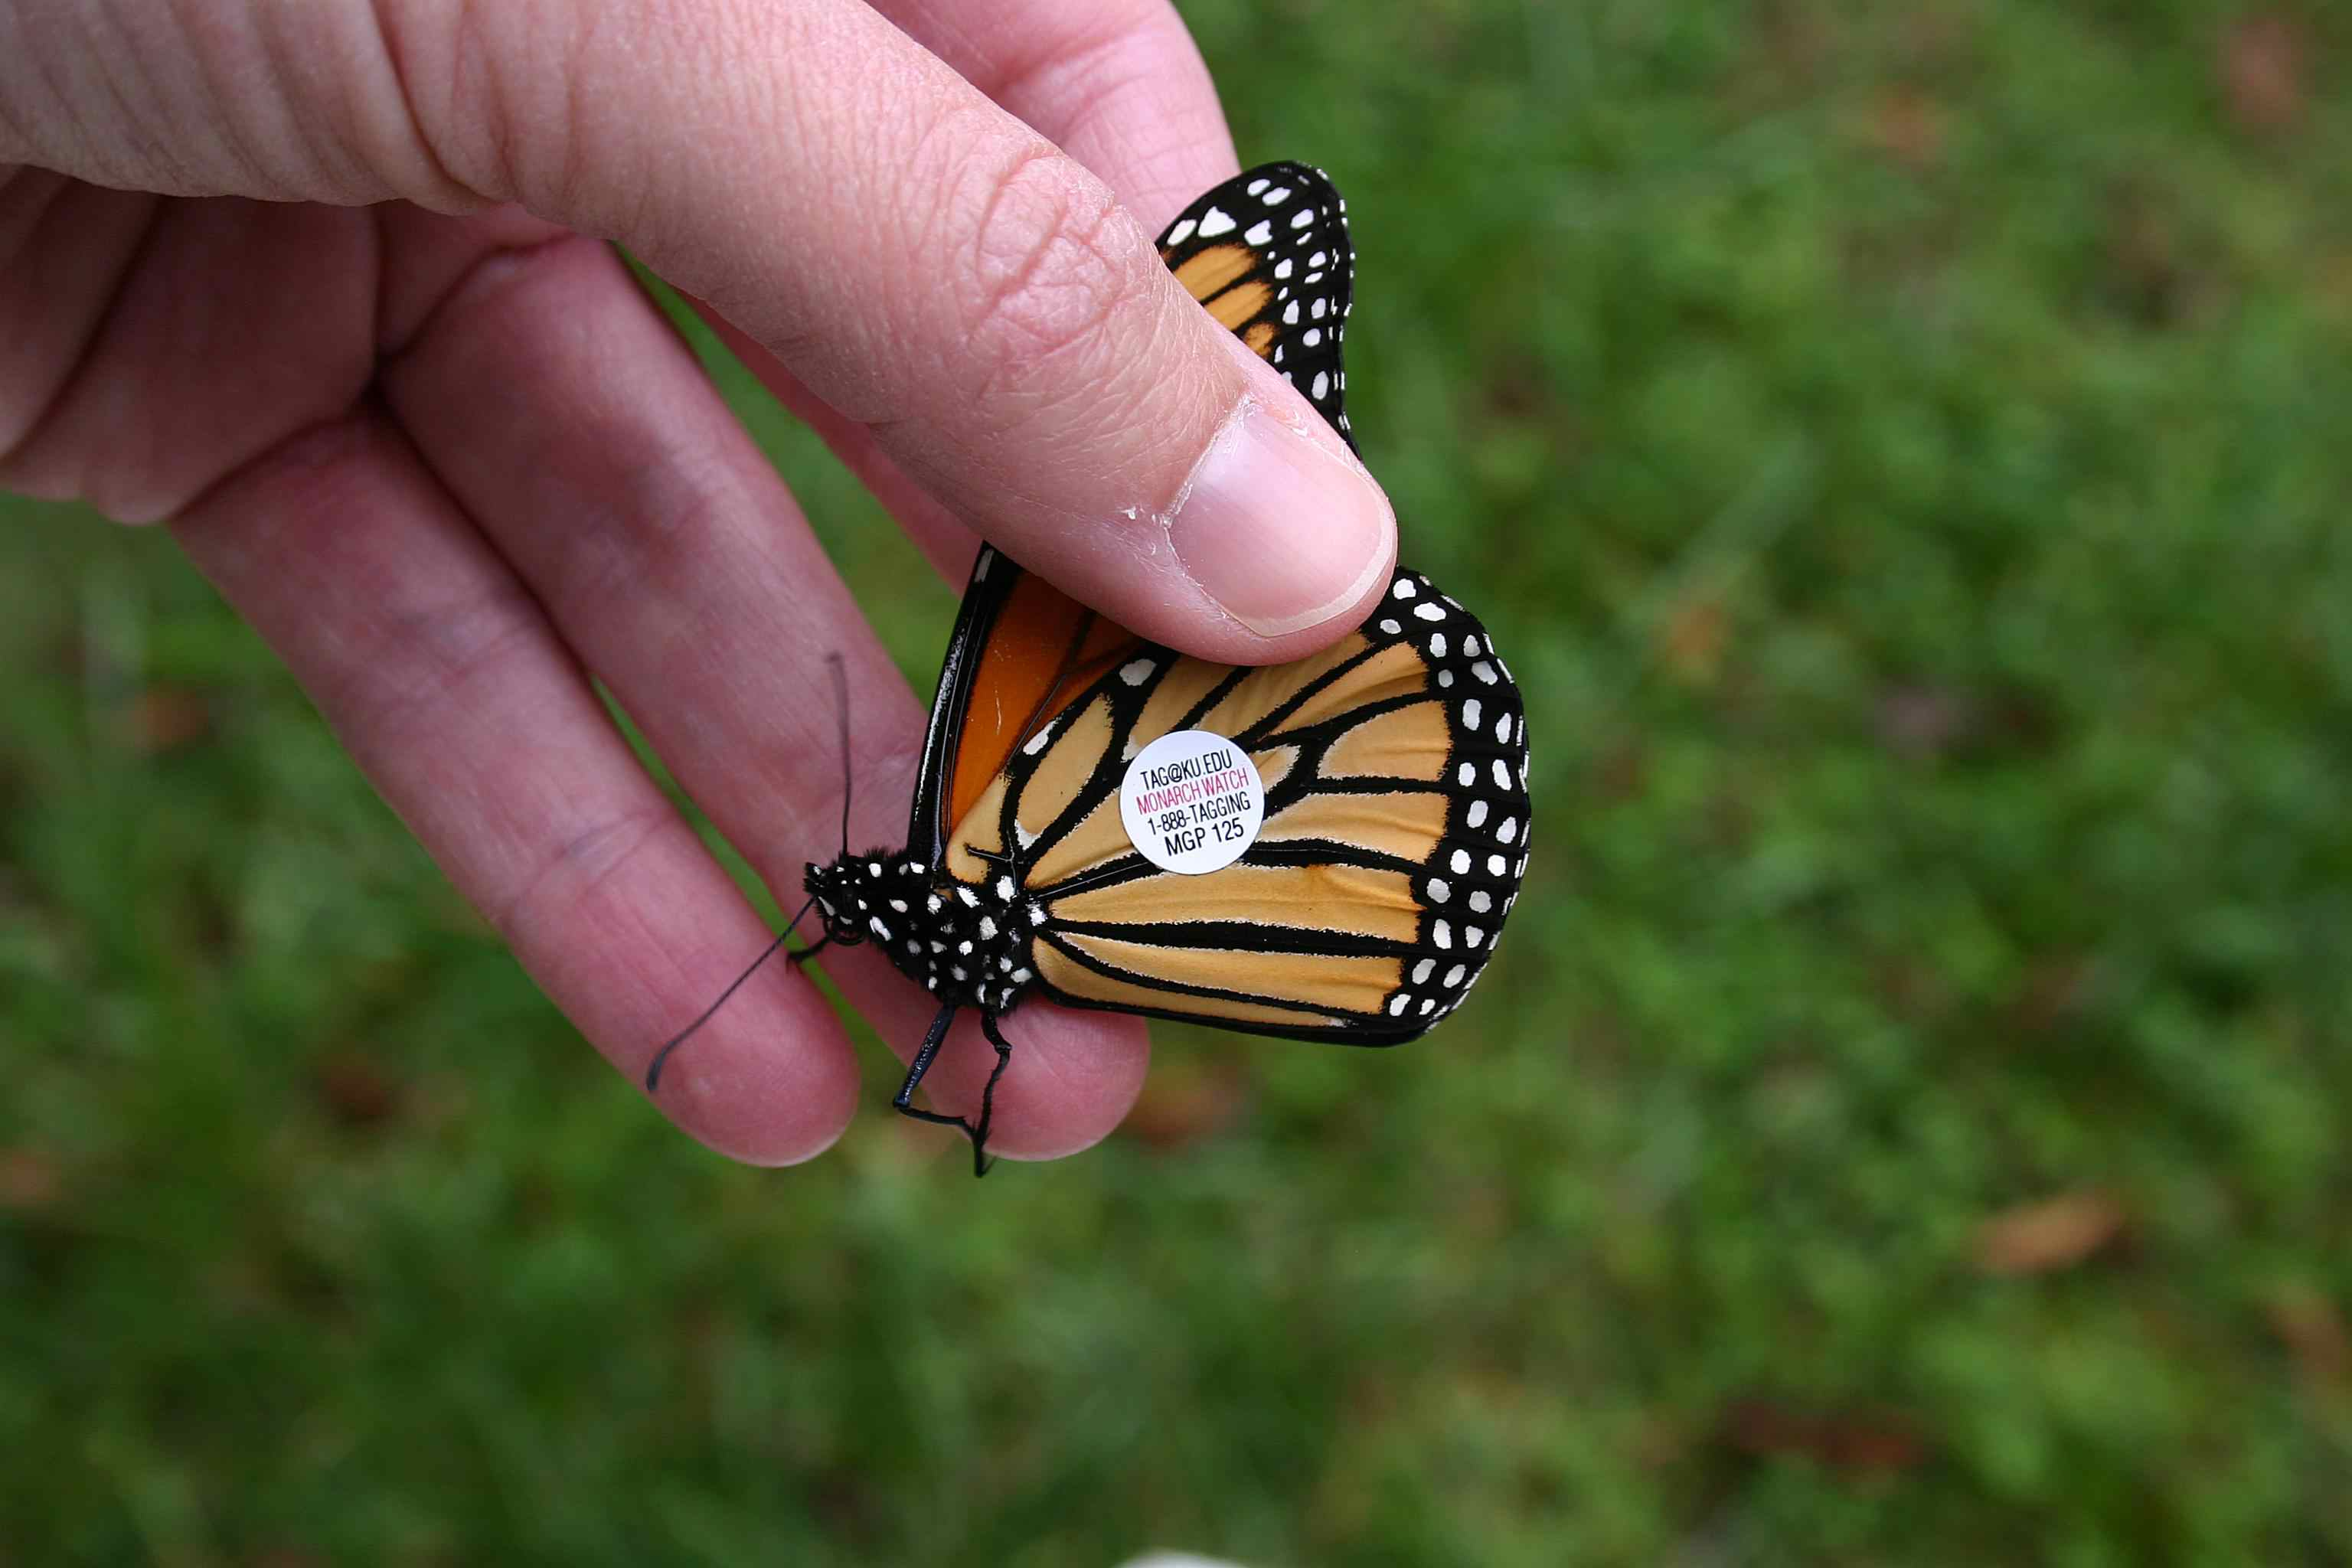 Volunteers tag monarchs so scientists can map their migration pathways.